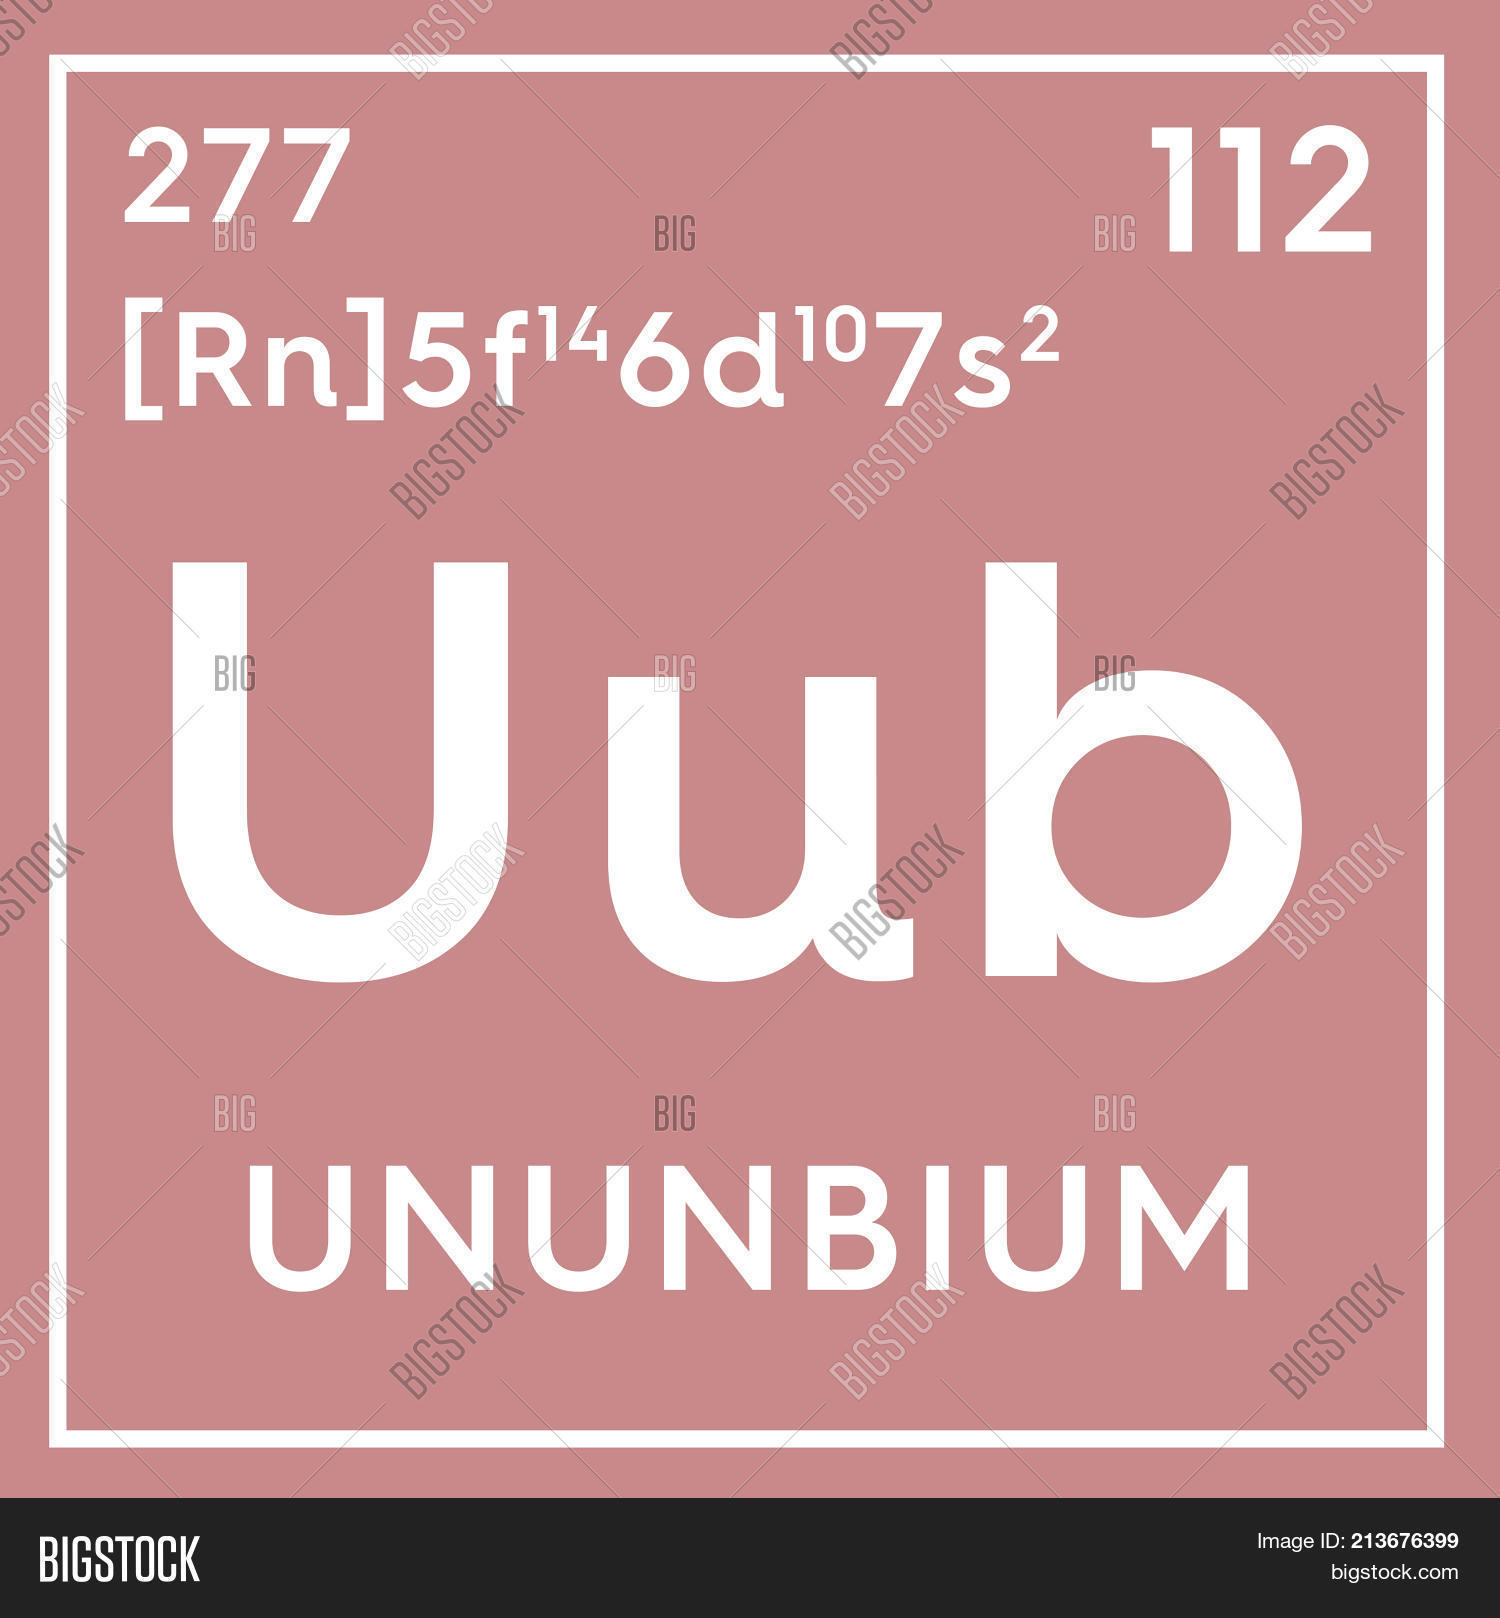 Ununbium transition image photo free trial bigstock chemical element of mendeleevs periodic table 3d illustration urtaz Gallery